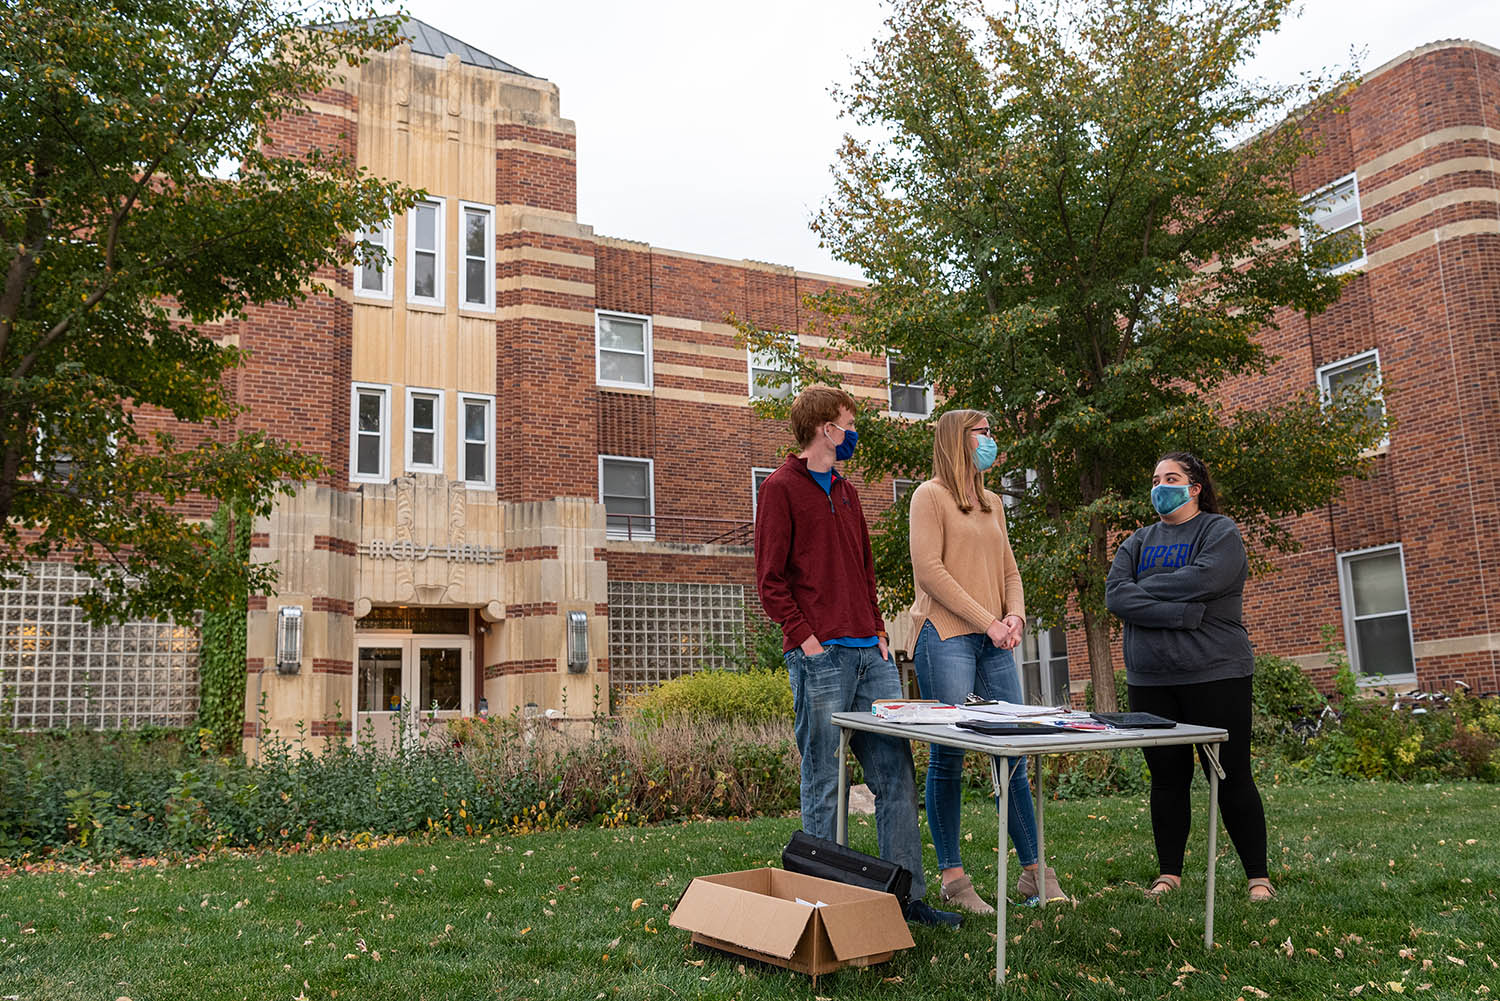 From left, sophomore Tanner Butler of Broken Bow, junior Lydia Behnk of Elgin and junior Rachel Phillips of Omaha volunteer at an early/absentee voting drive on the UNK campus.